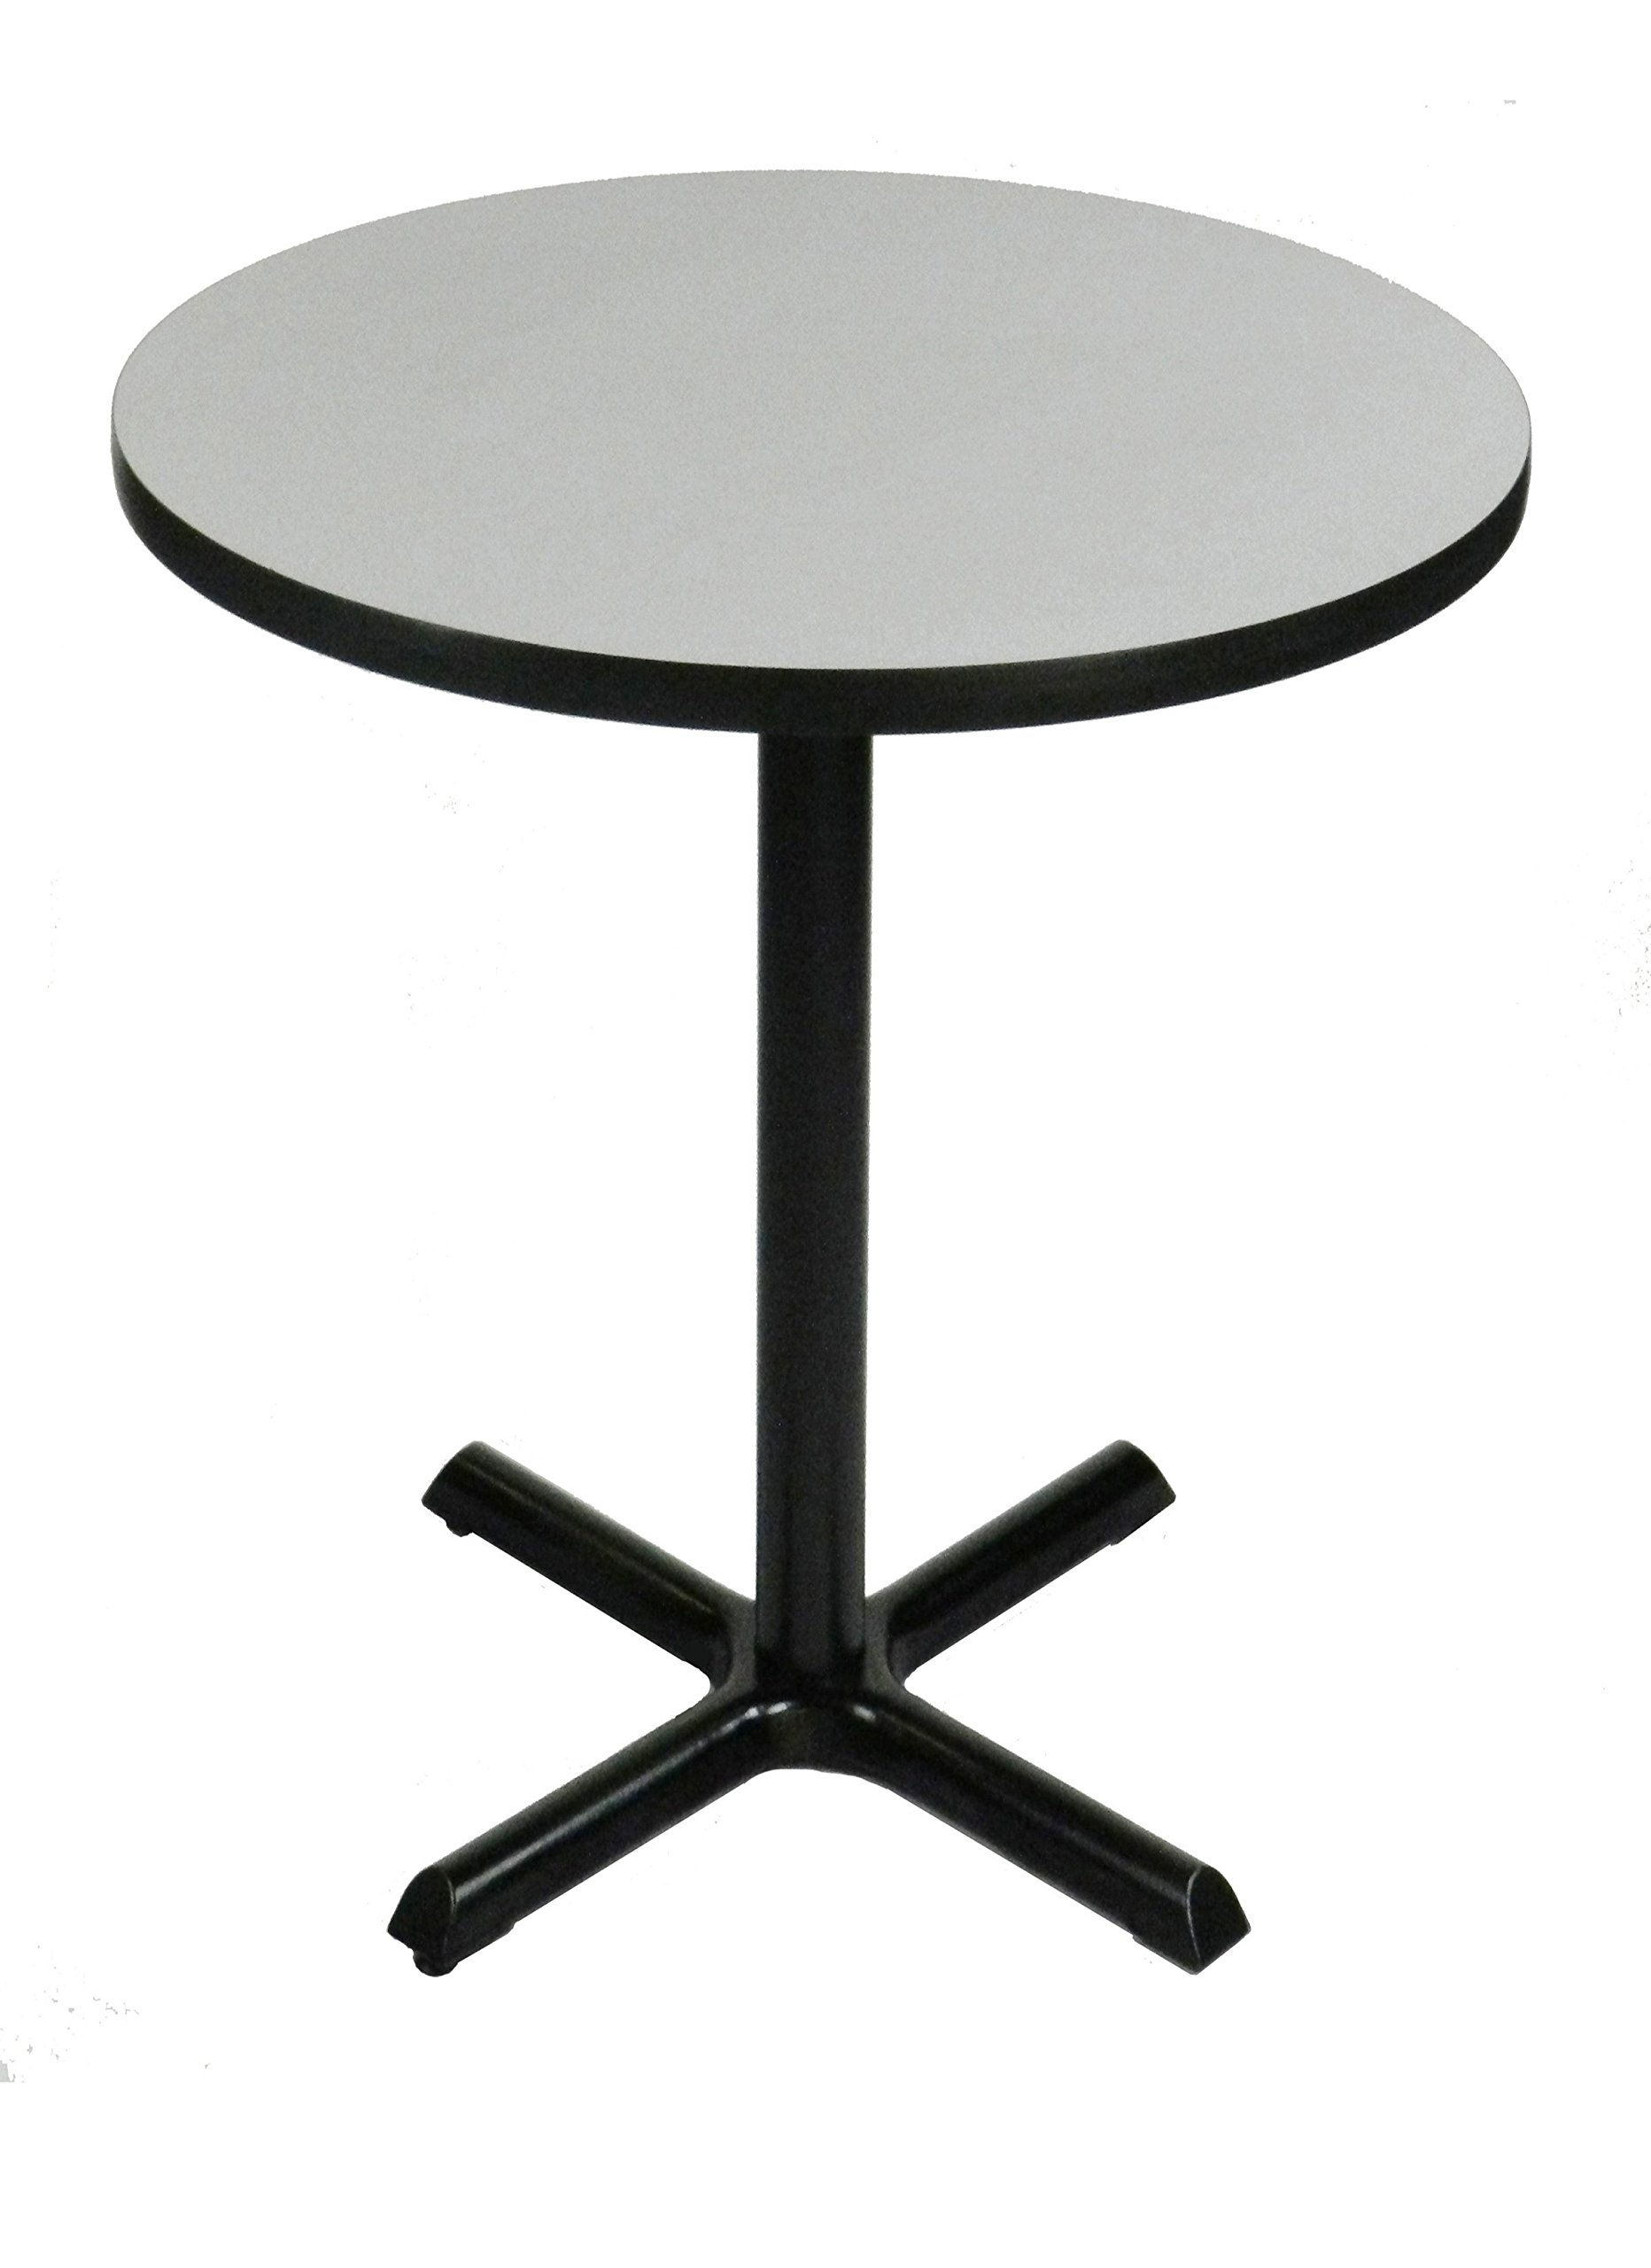 Correll BXB42R-15 -42'' Round 42'' Standing / Barstool Height , Café, & Break Room Table, Gray Granite Top & Black Base, Made in the USA